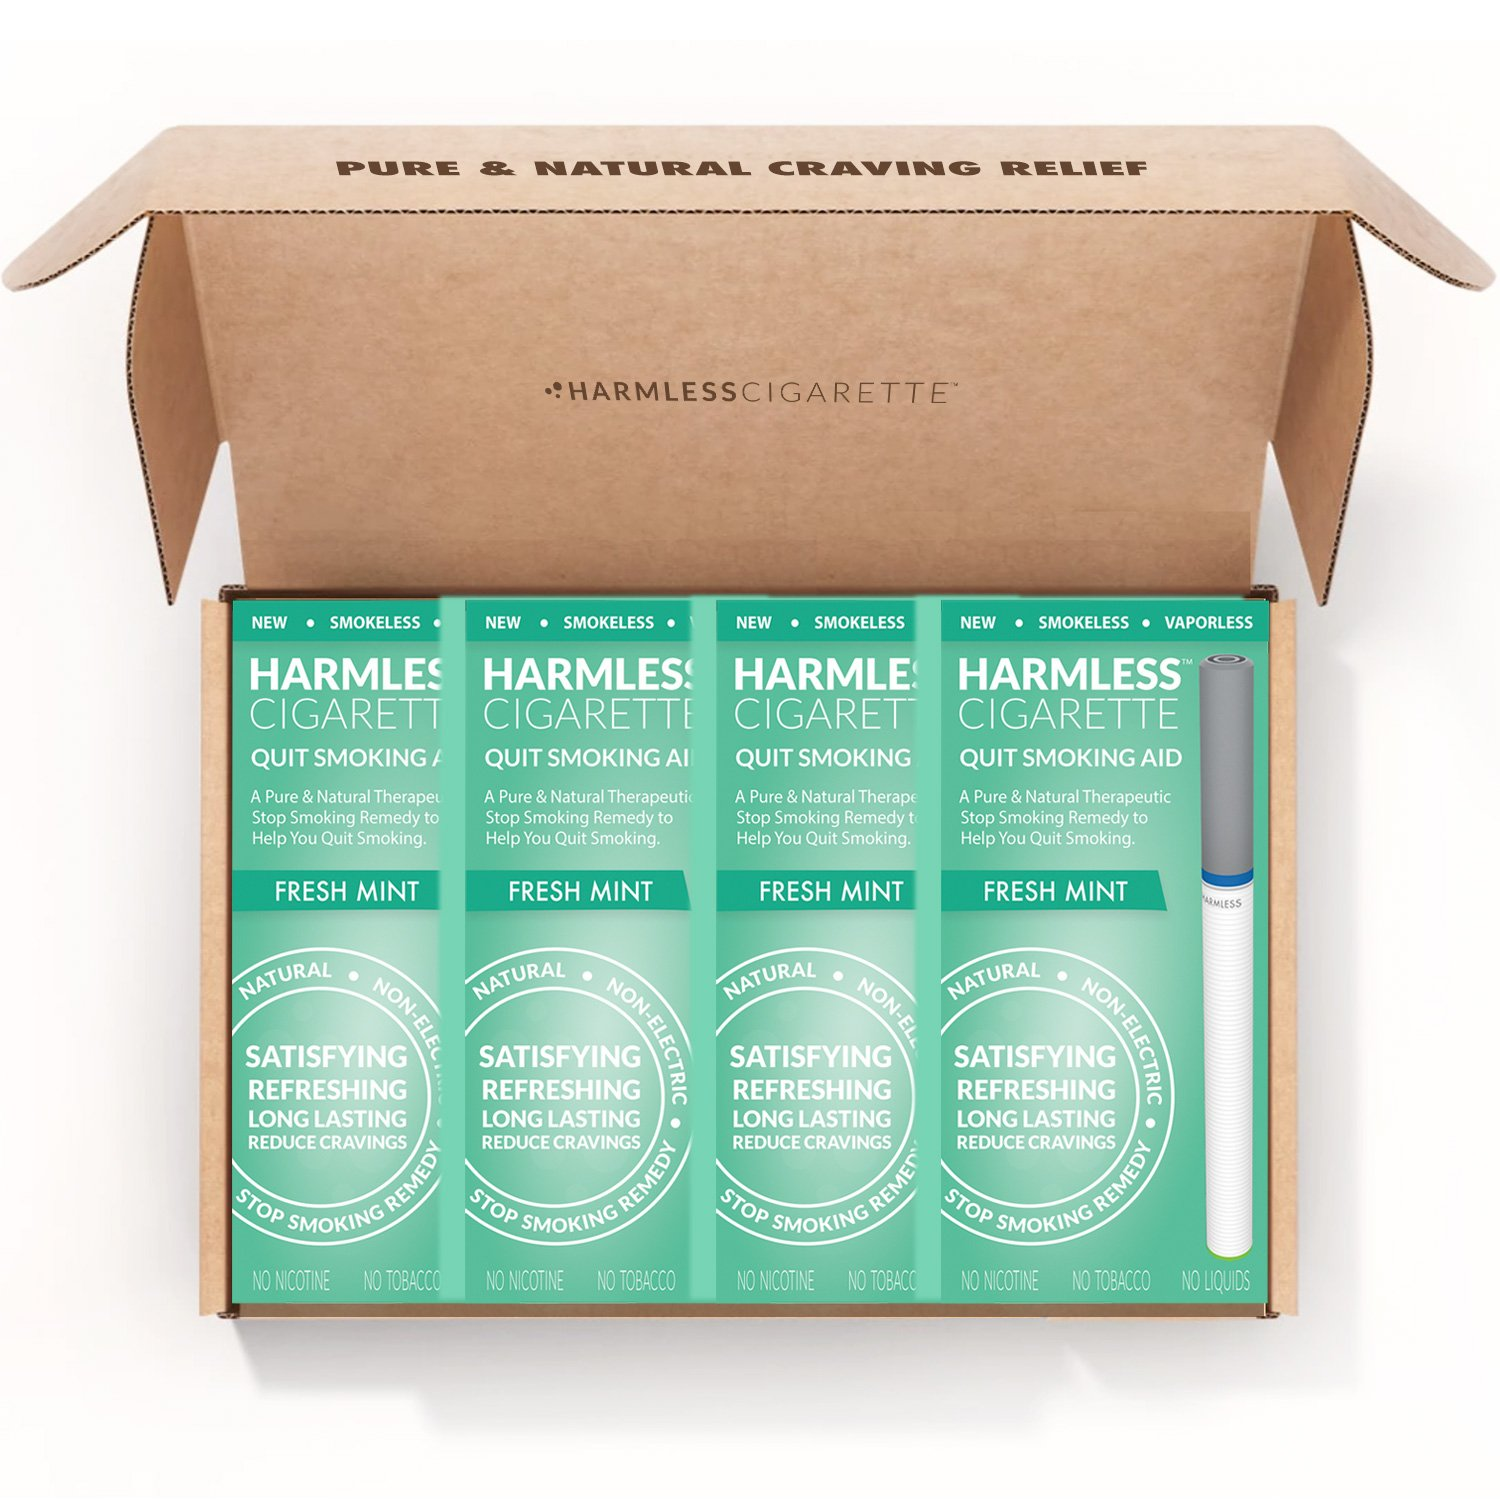 Harmless Cigarette/4 Week Quit Kit/Stop Smoking Aid/Includes FREE Quit Smoking Support Guide.(4 Pack Quit Kit, Fresh Mint)